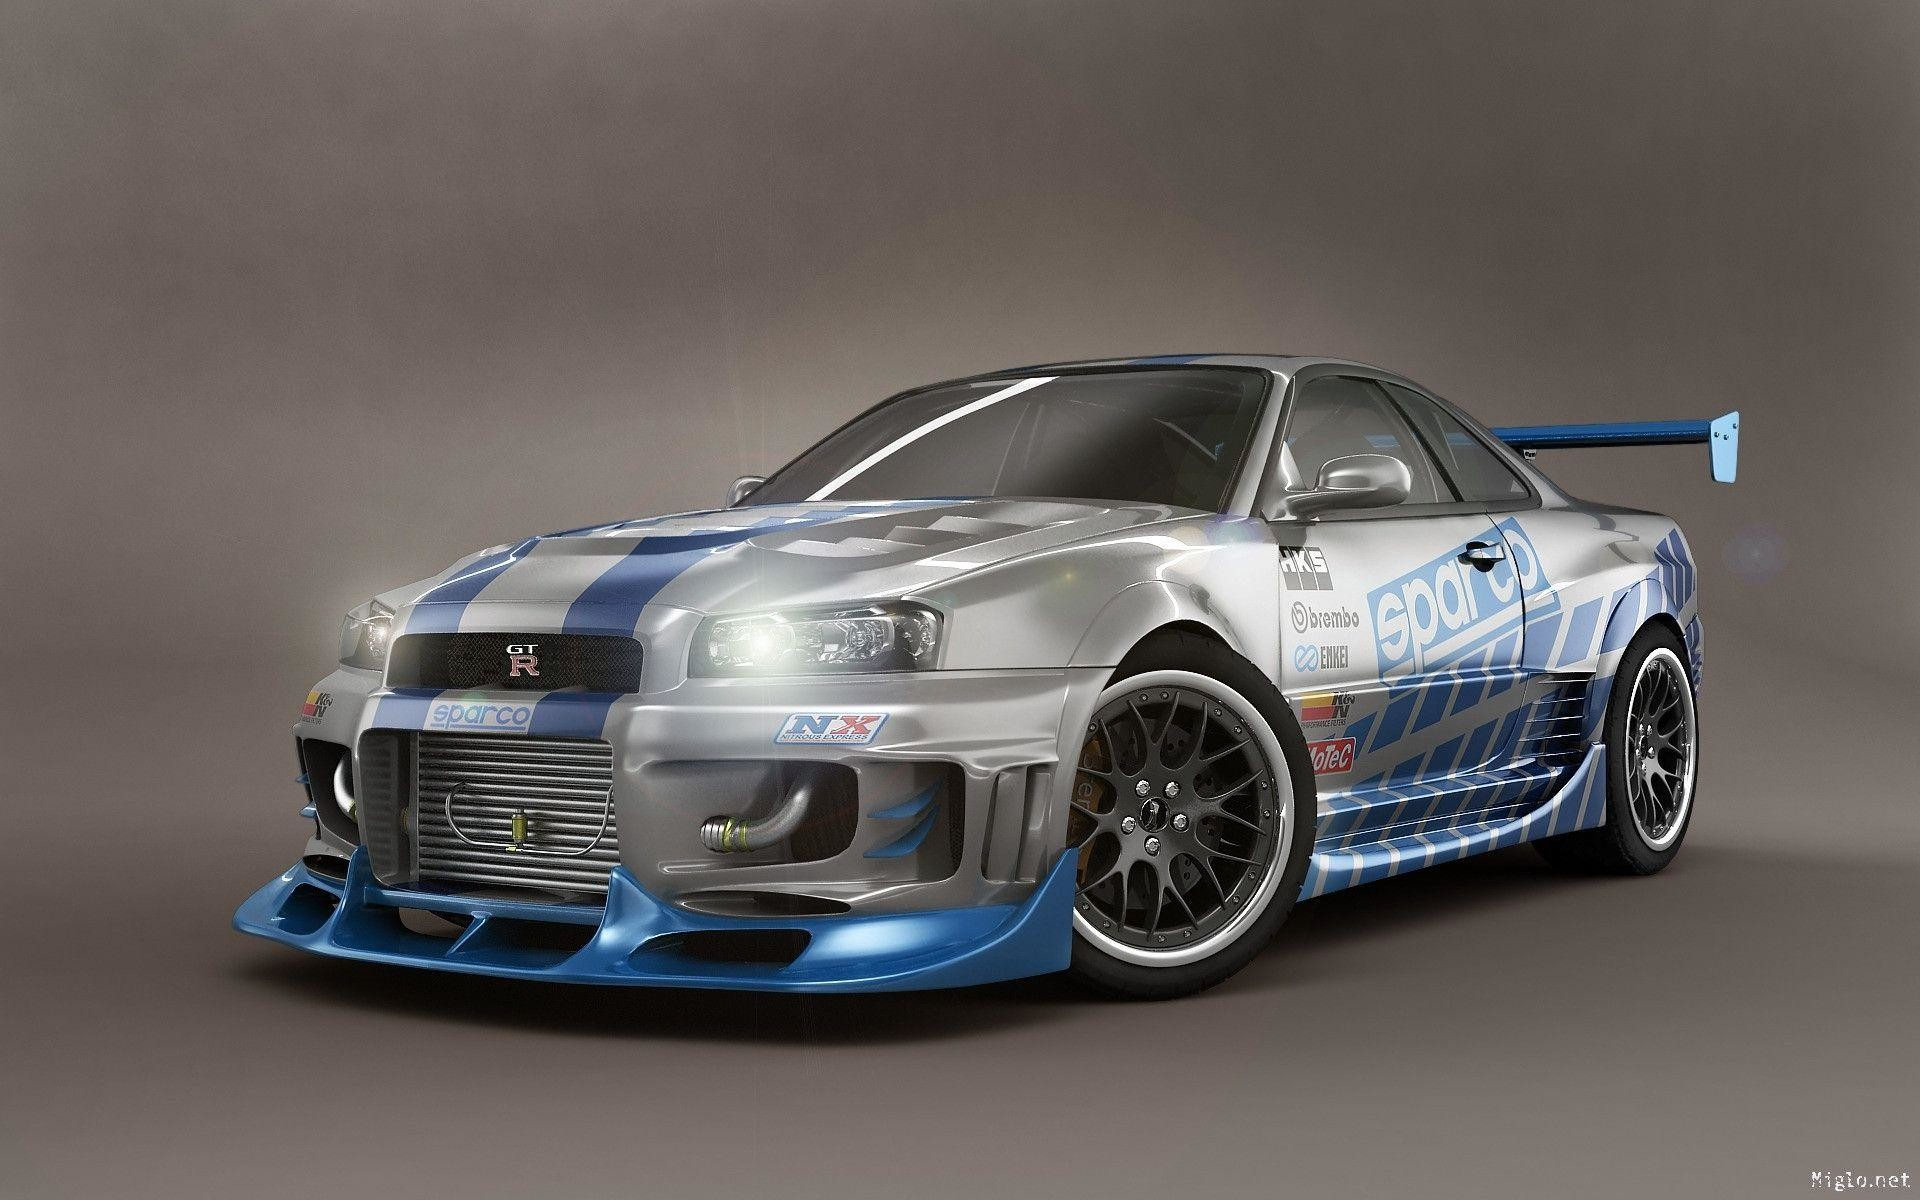 Res: 1920x1200, Skyline Gtr Wallpapers - Full HD wallpaper search